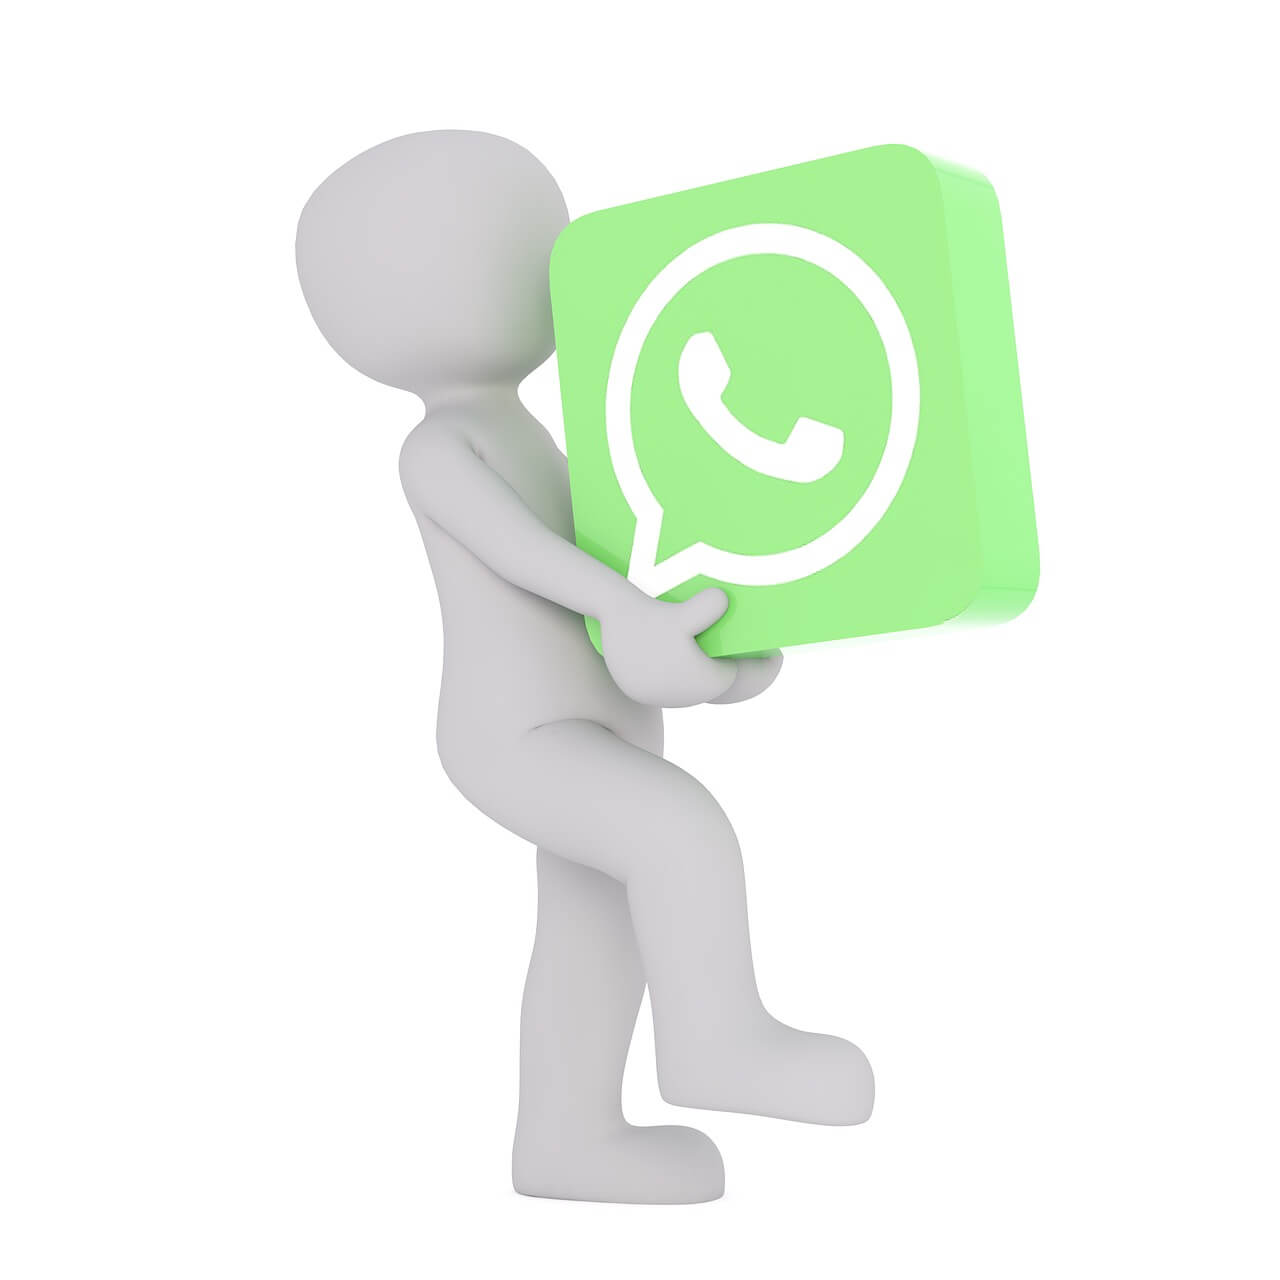 Download GBWhatsApp Apk 7 99 Latest Version (Anti-BAN) 2019